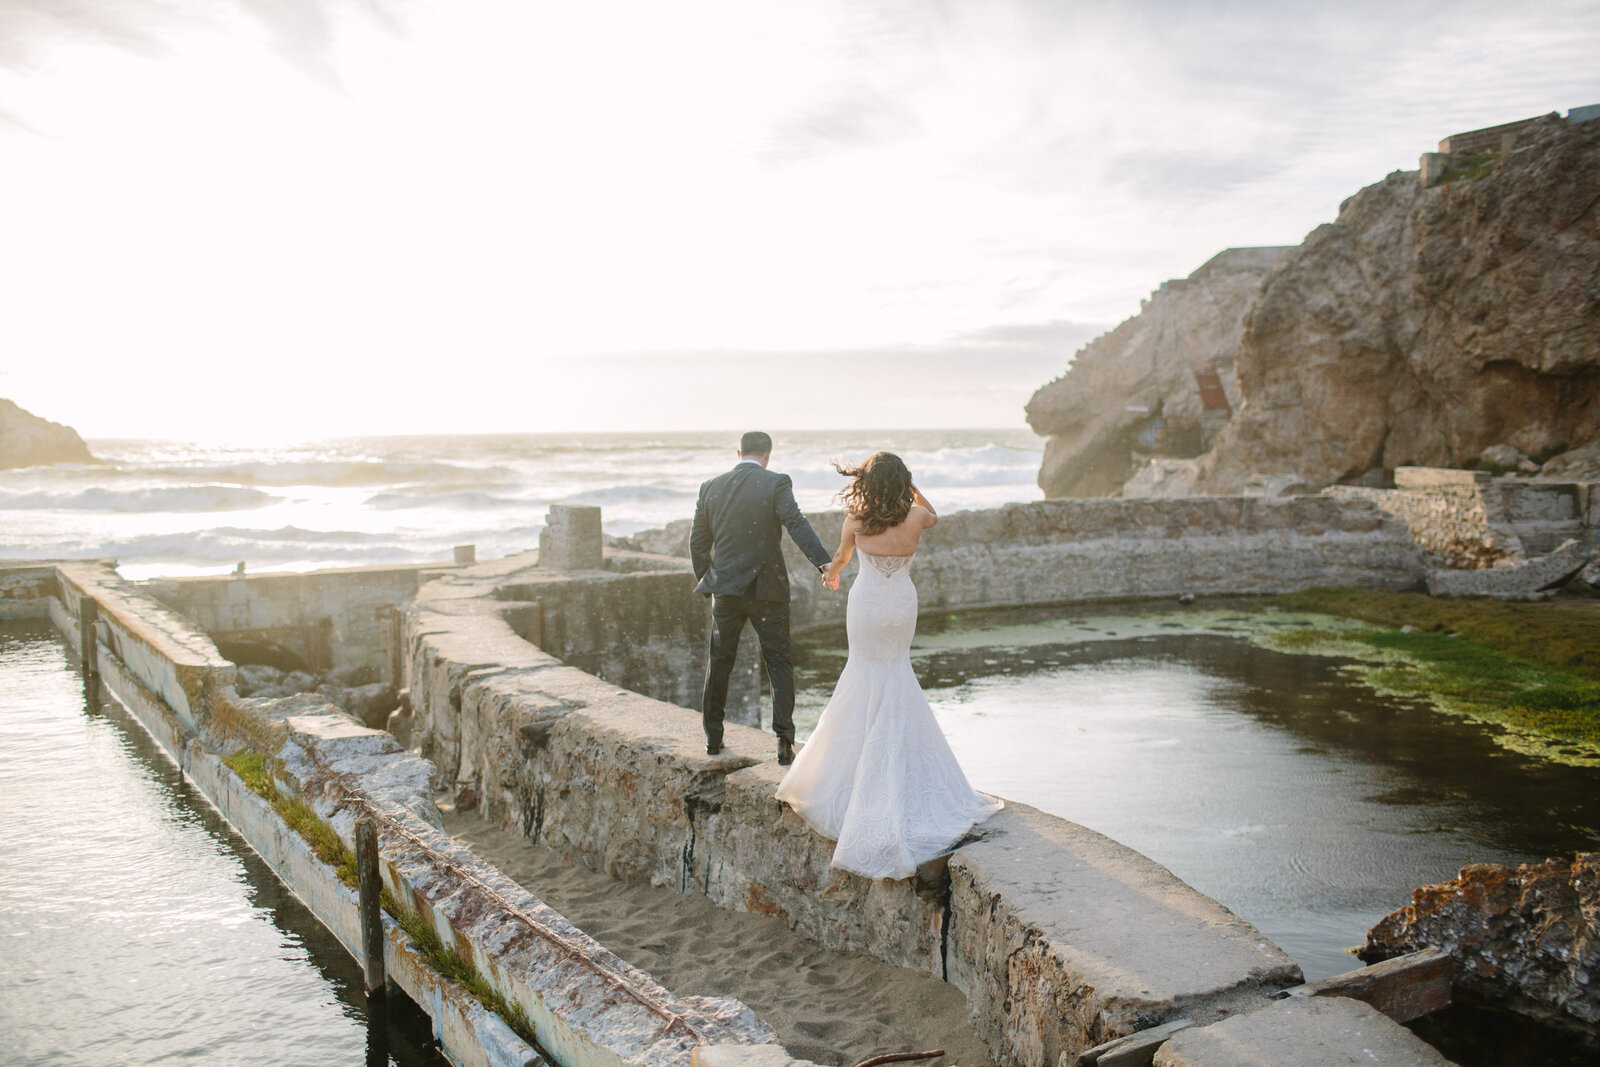 larissa-cleveland-elope-eleopement-intimate-wedding-photographer-san-francisco-napa-carmel-005